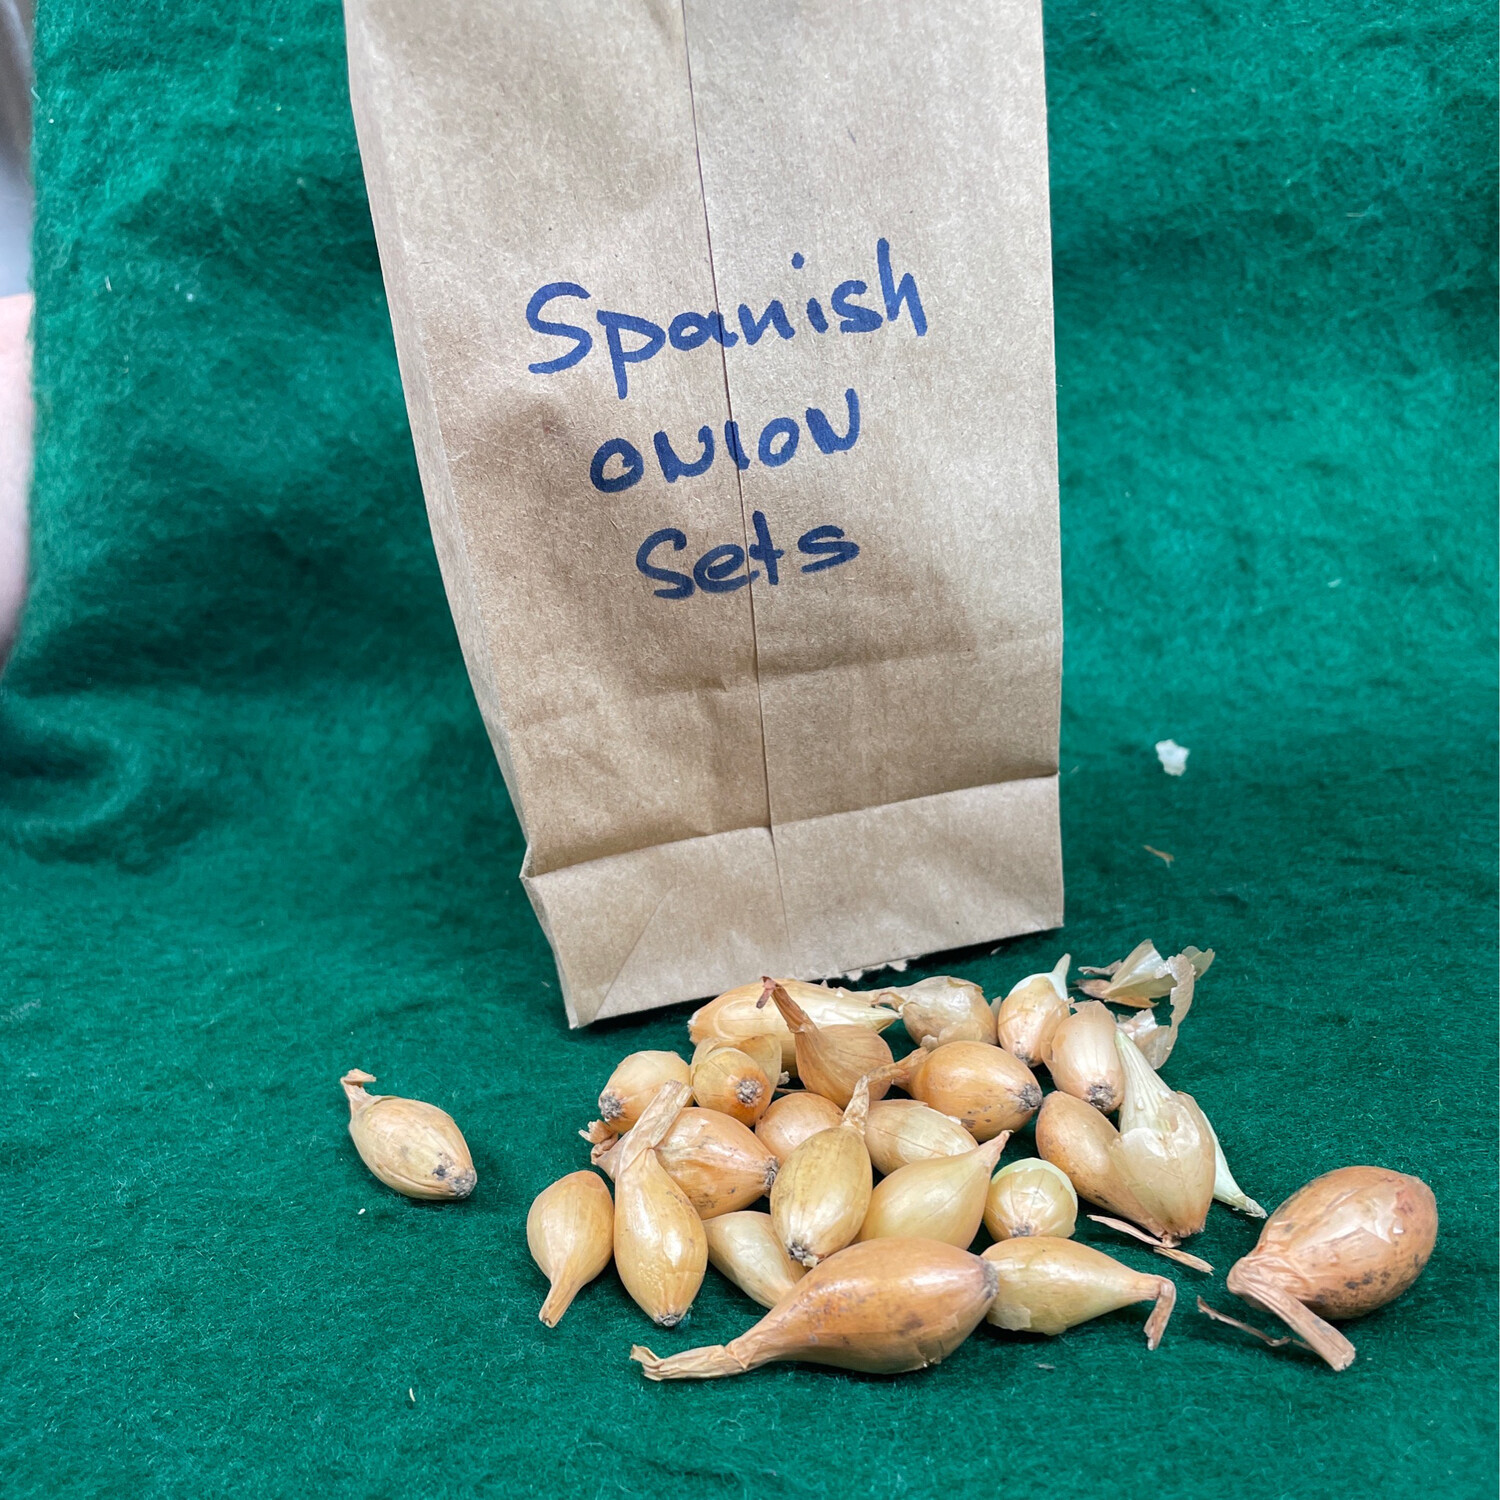 Onion Set Spanish